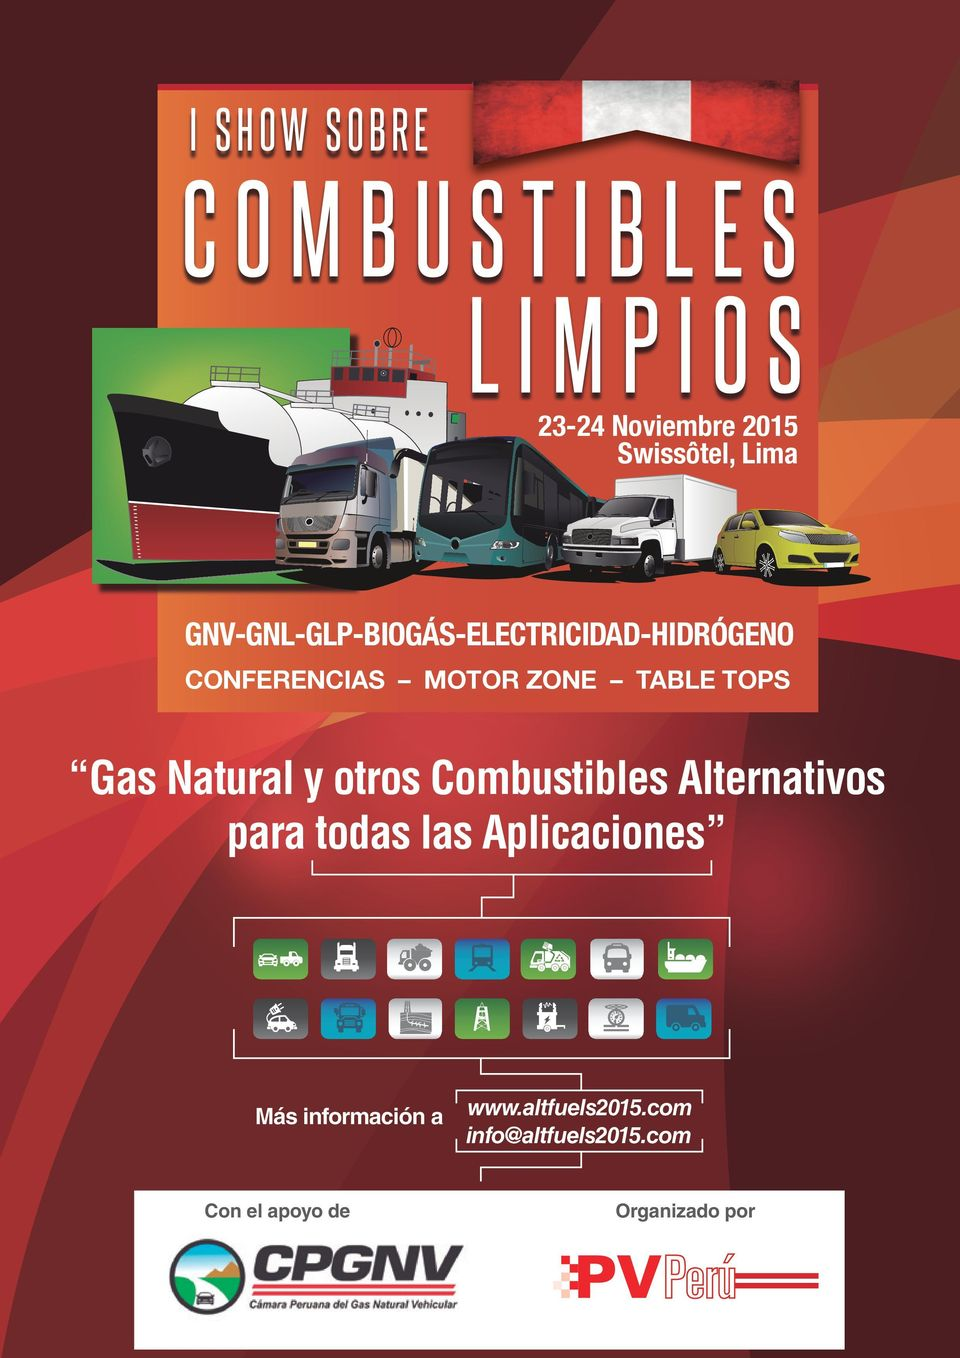 CONFERENCIAS MOTOR ZONE TABLE TOPS Gas Natural y otros